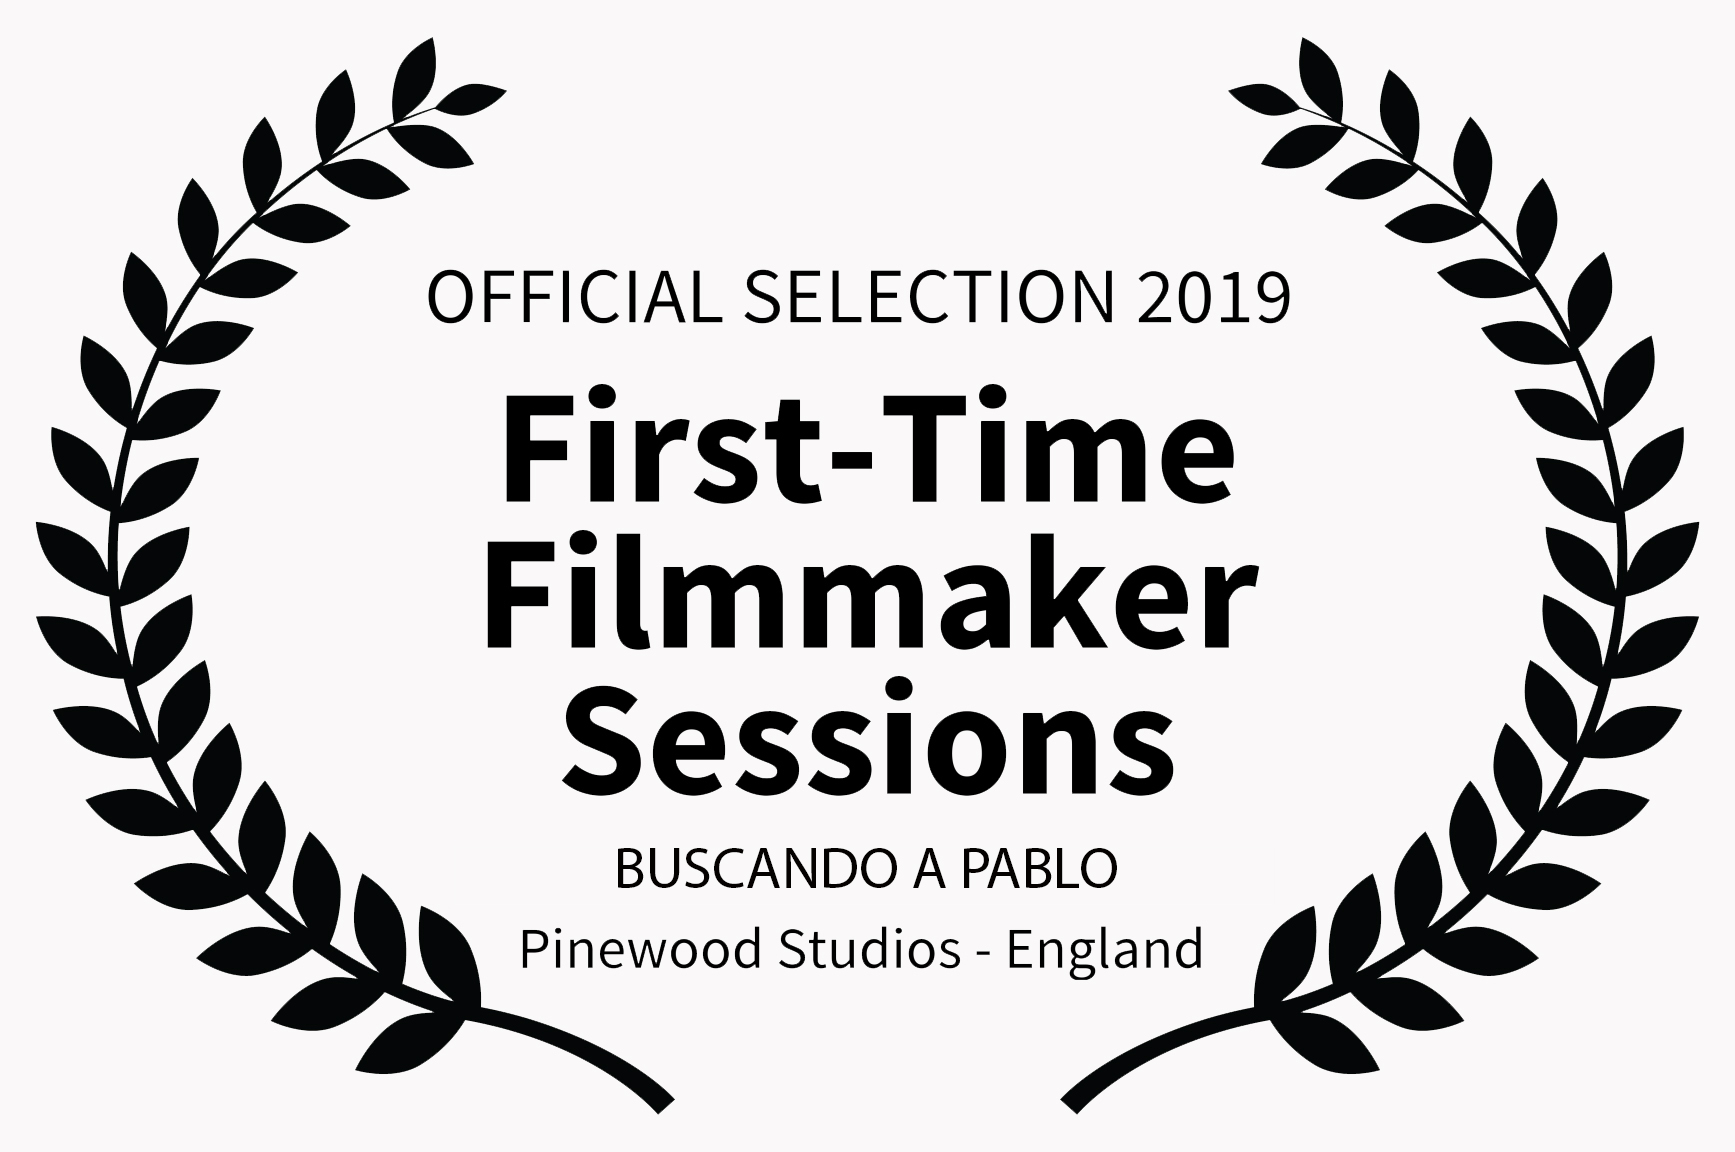 OFFICIAL SELECTION 2019  - First-Time Fi